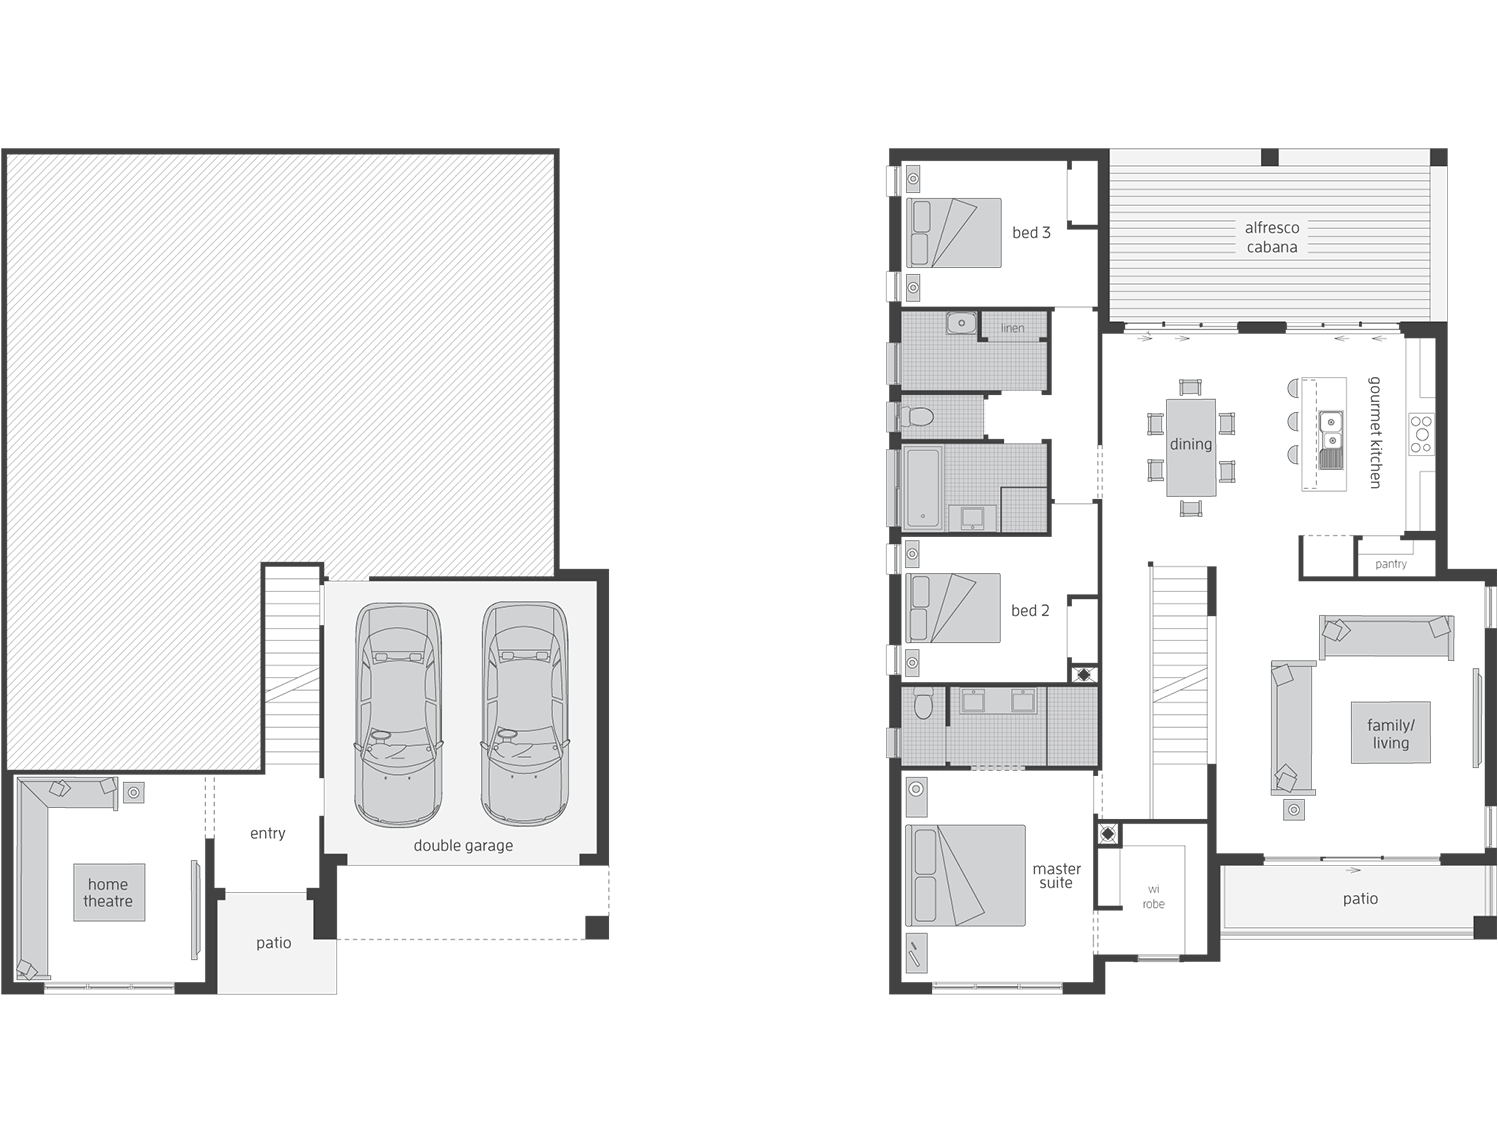 Floor Plan - Monterey - Split Level Home - McDonald Jones